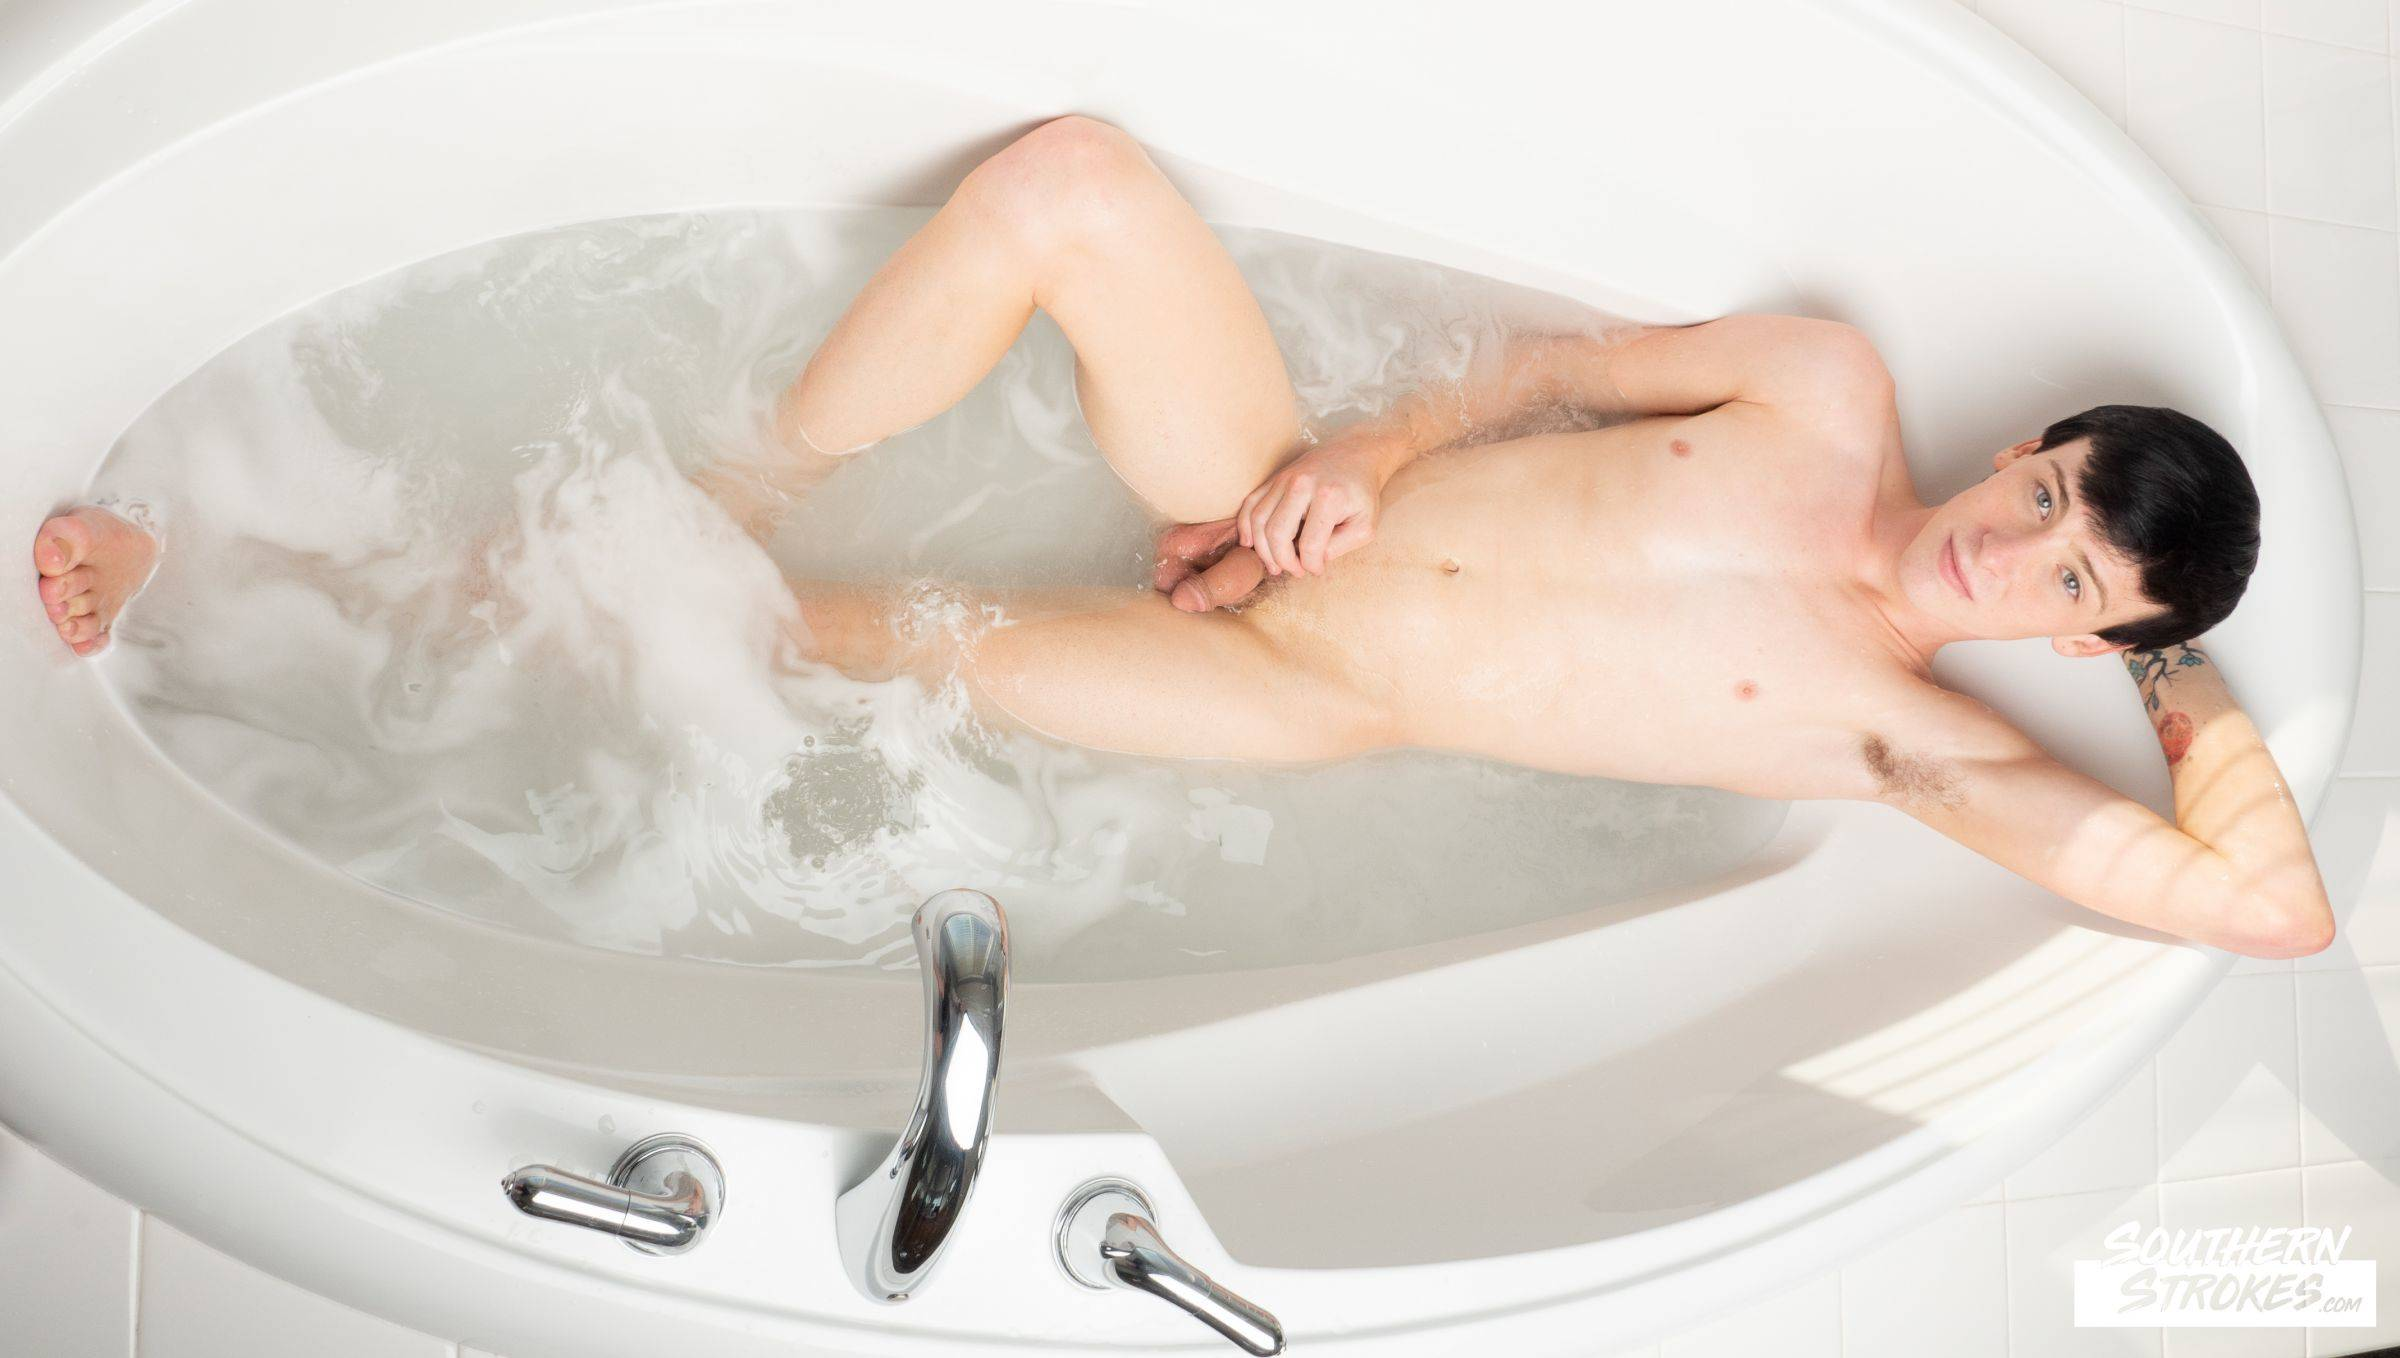 Southern Strokes – Chris Summers